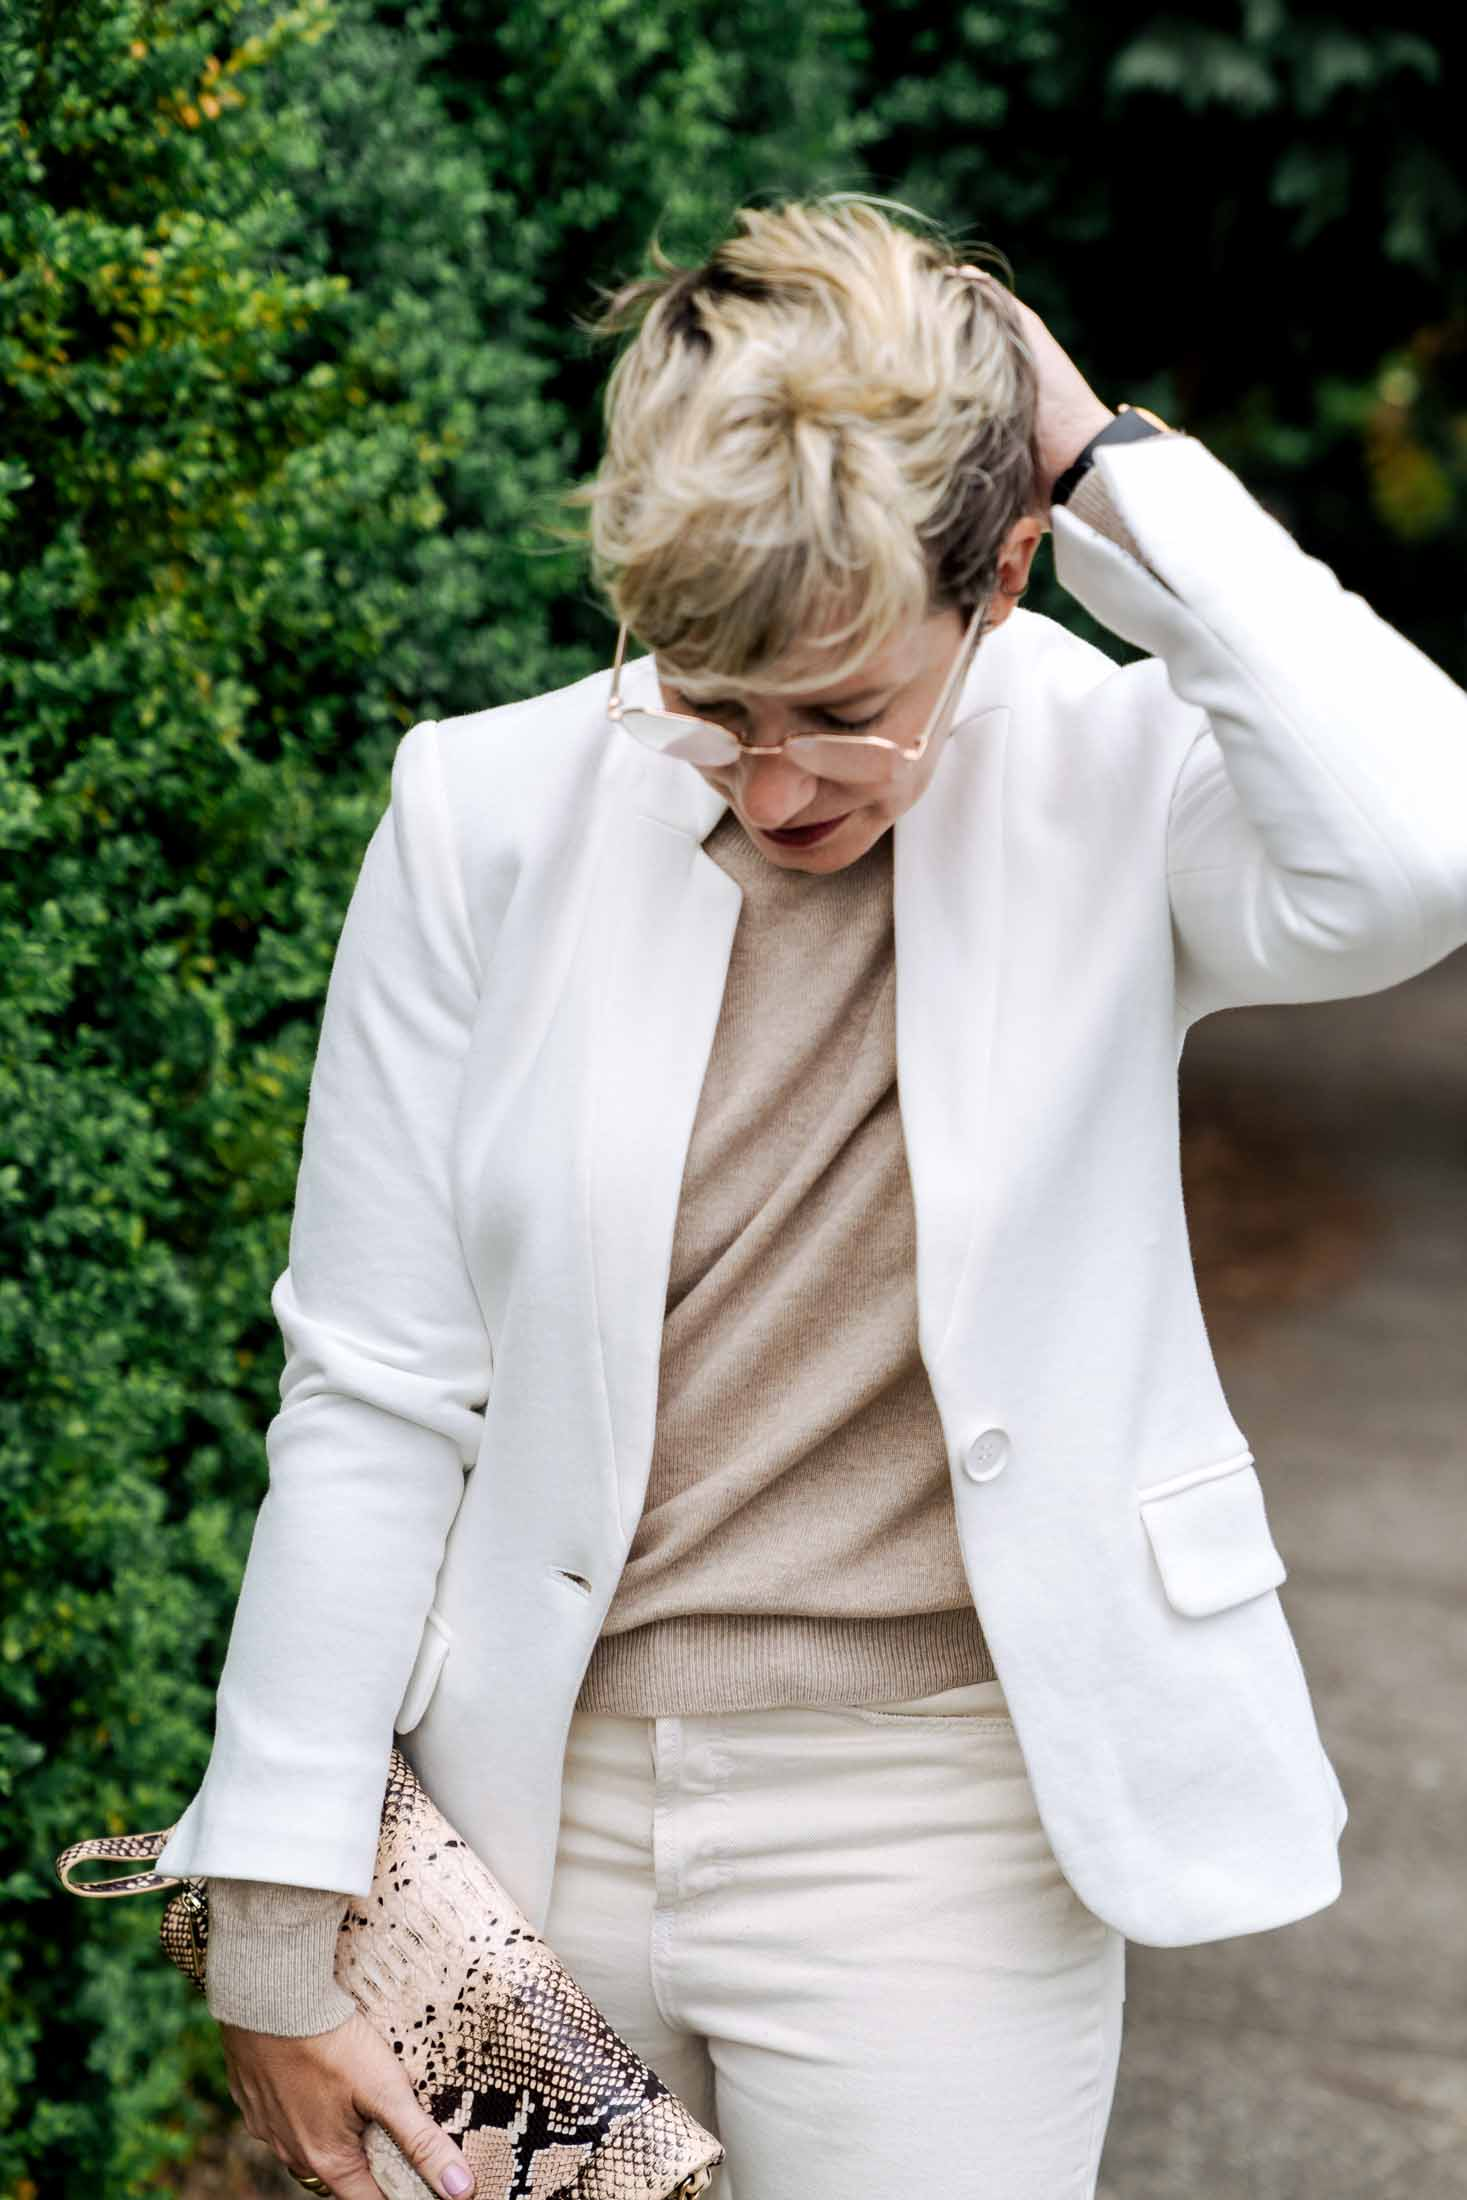 The white blazer --a closet staple we didn't know we needed -- makes any outfit feel fresh & sharp. Wear it monochromatic or w/ a pop of print.